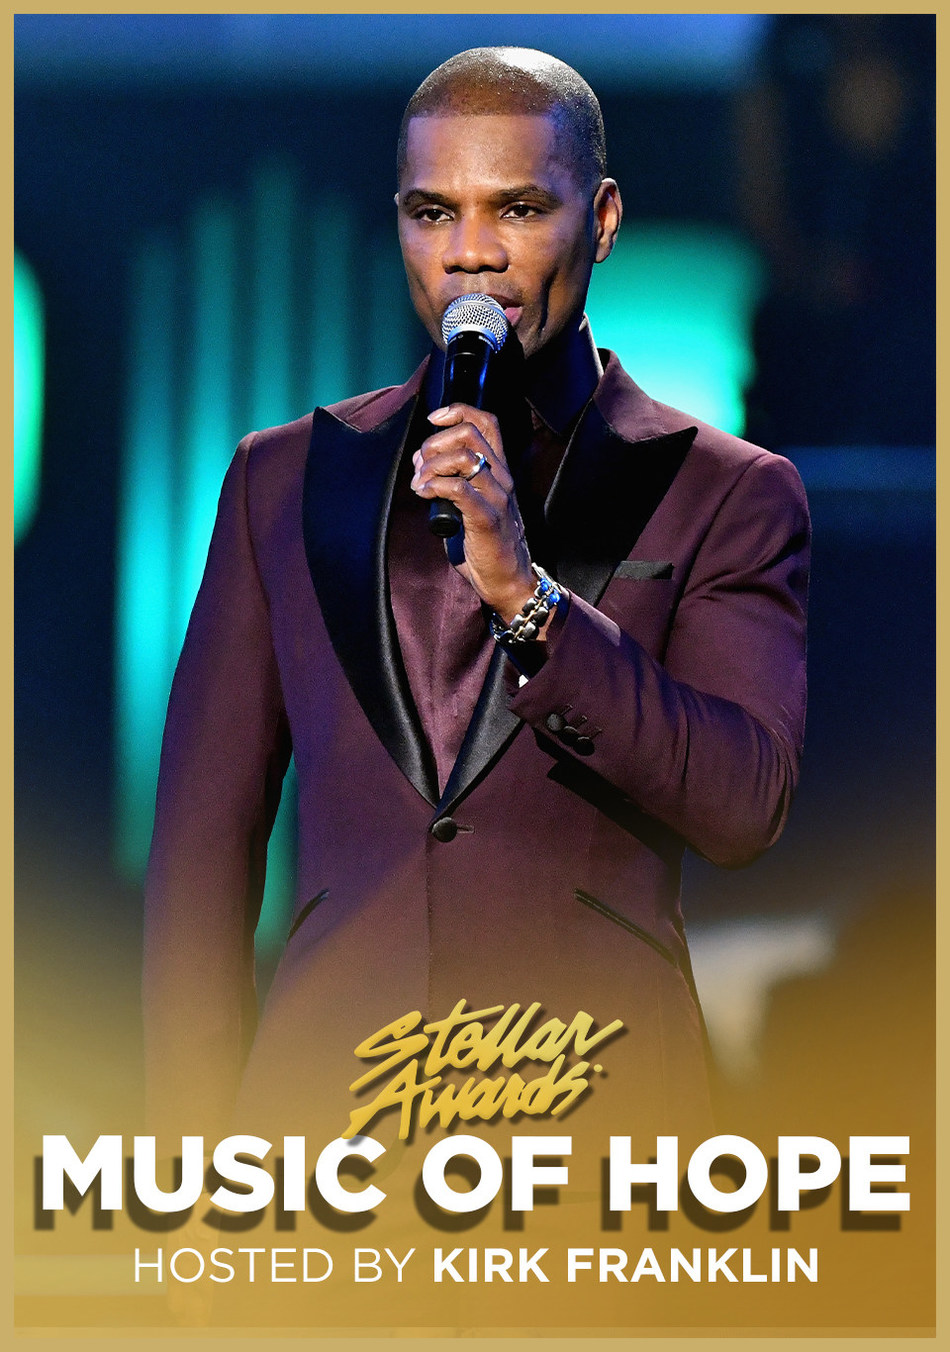 Music of Hope hosted by Kirk Franklin